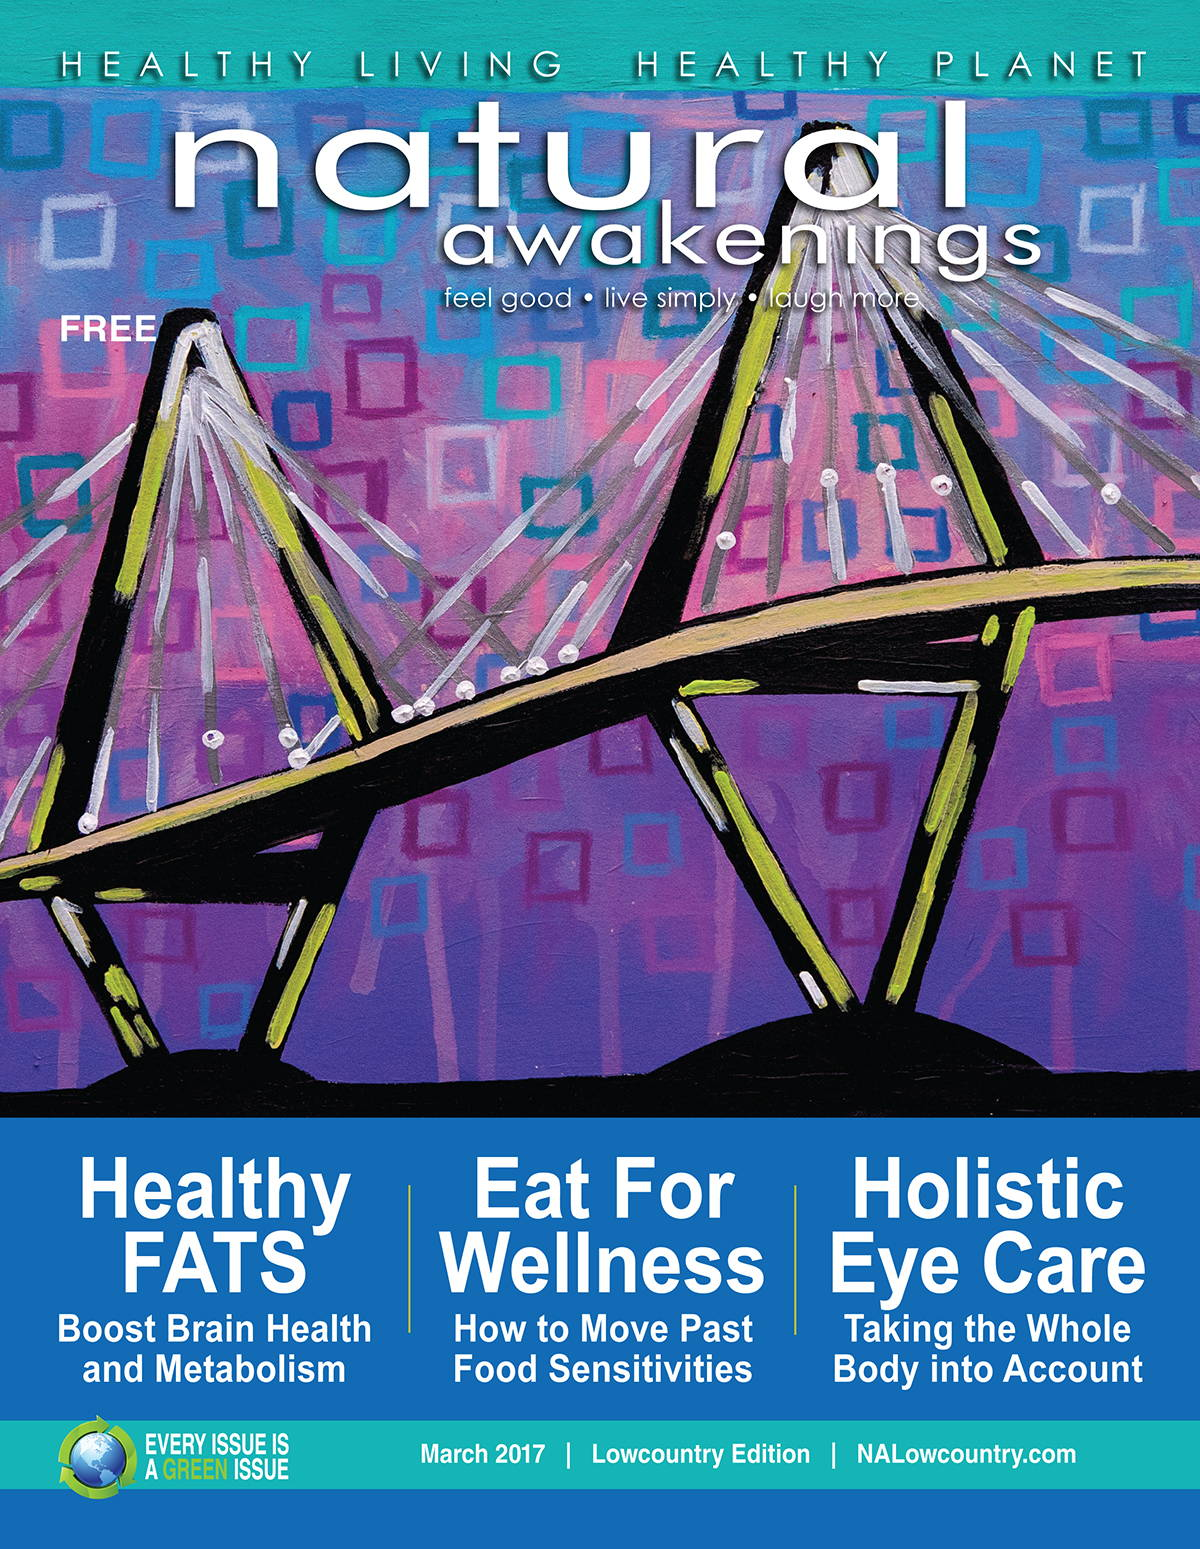 March 2017 Natural Awakenings Lowcountry Cover Artist